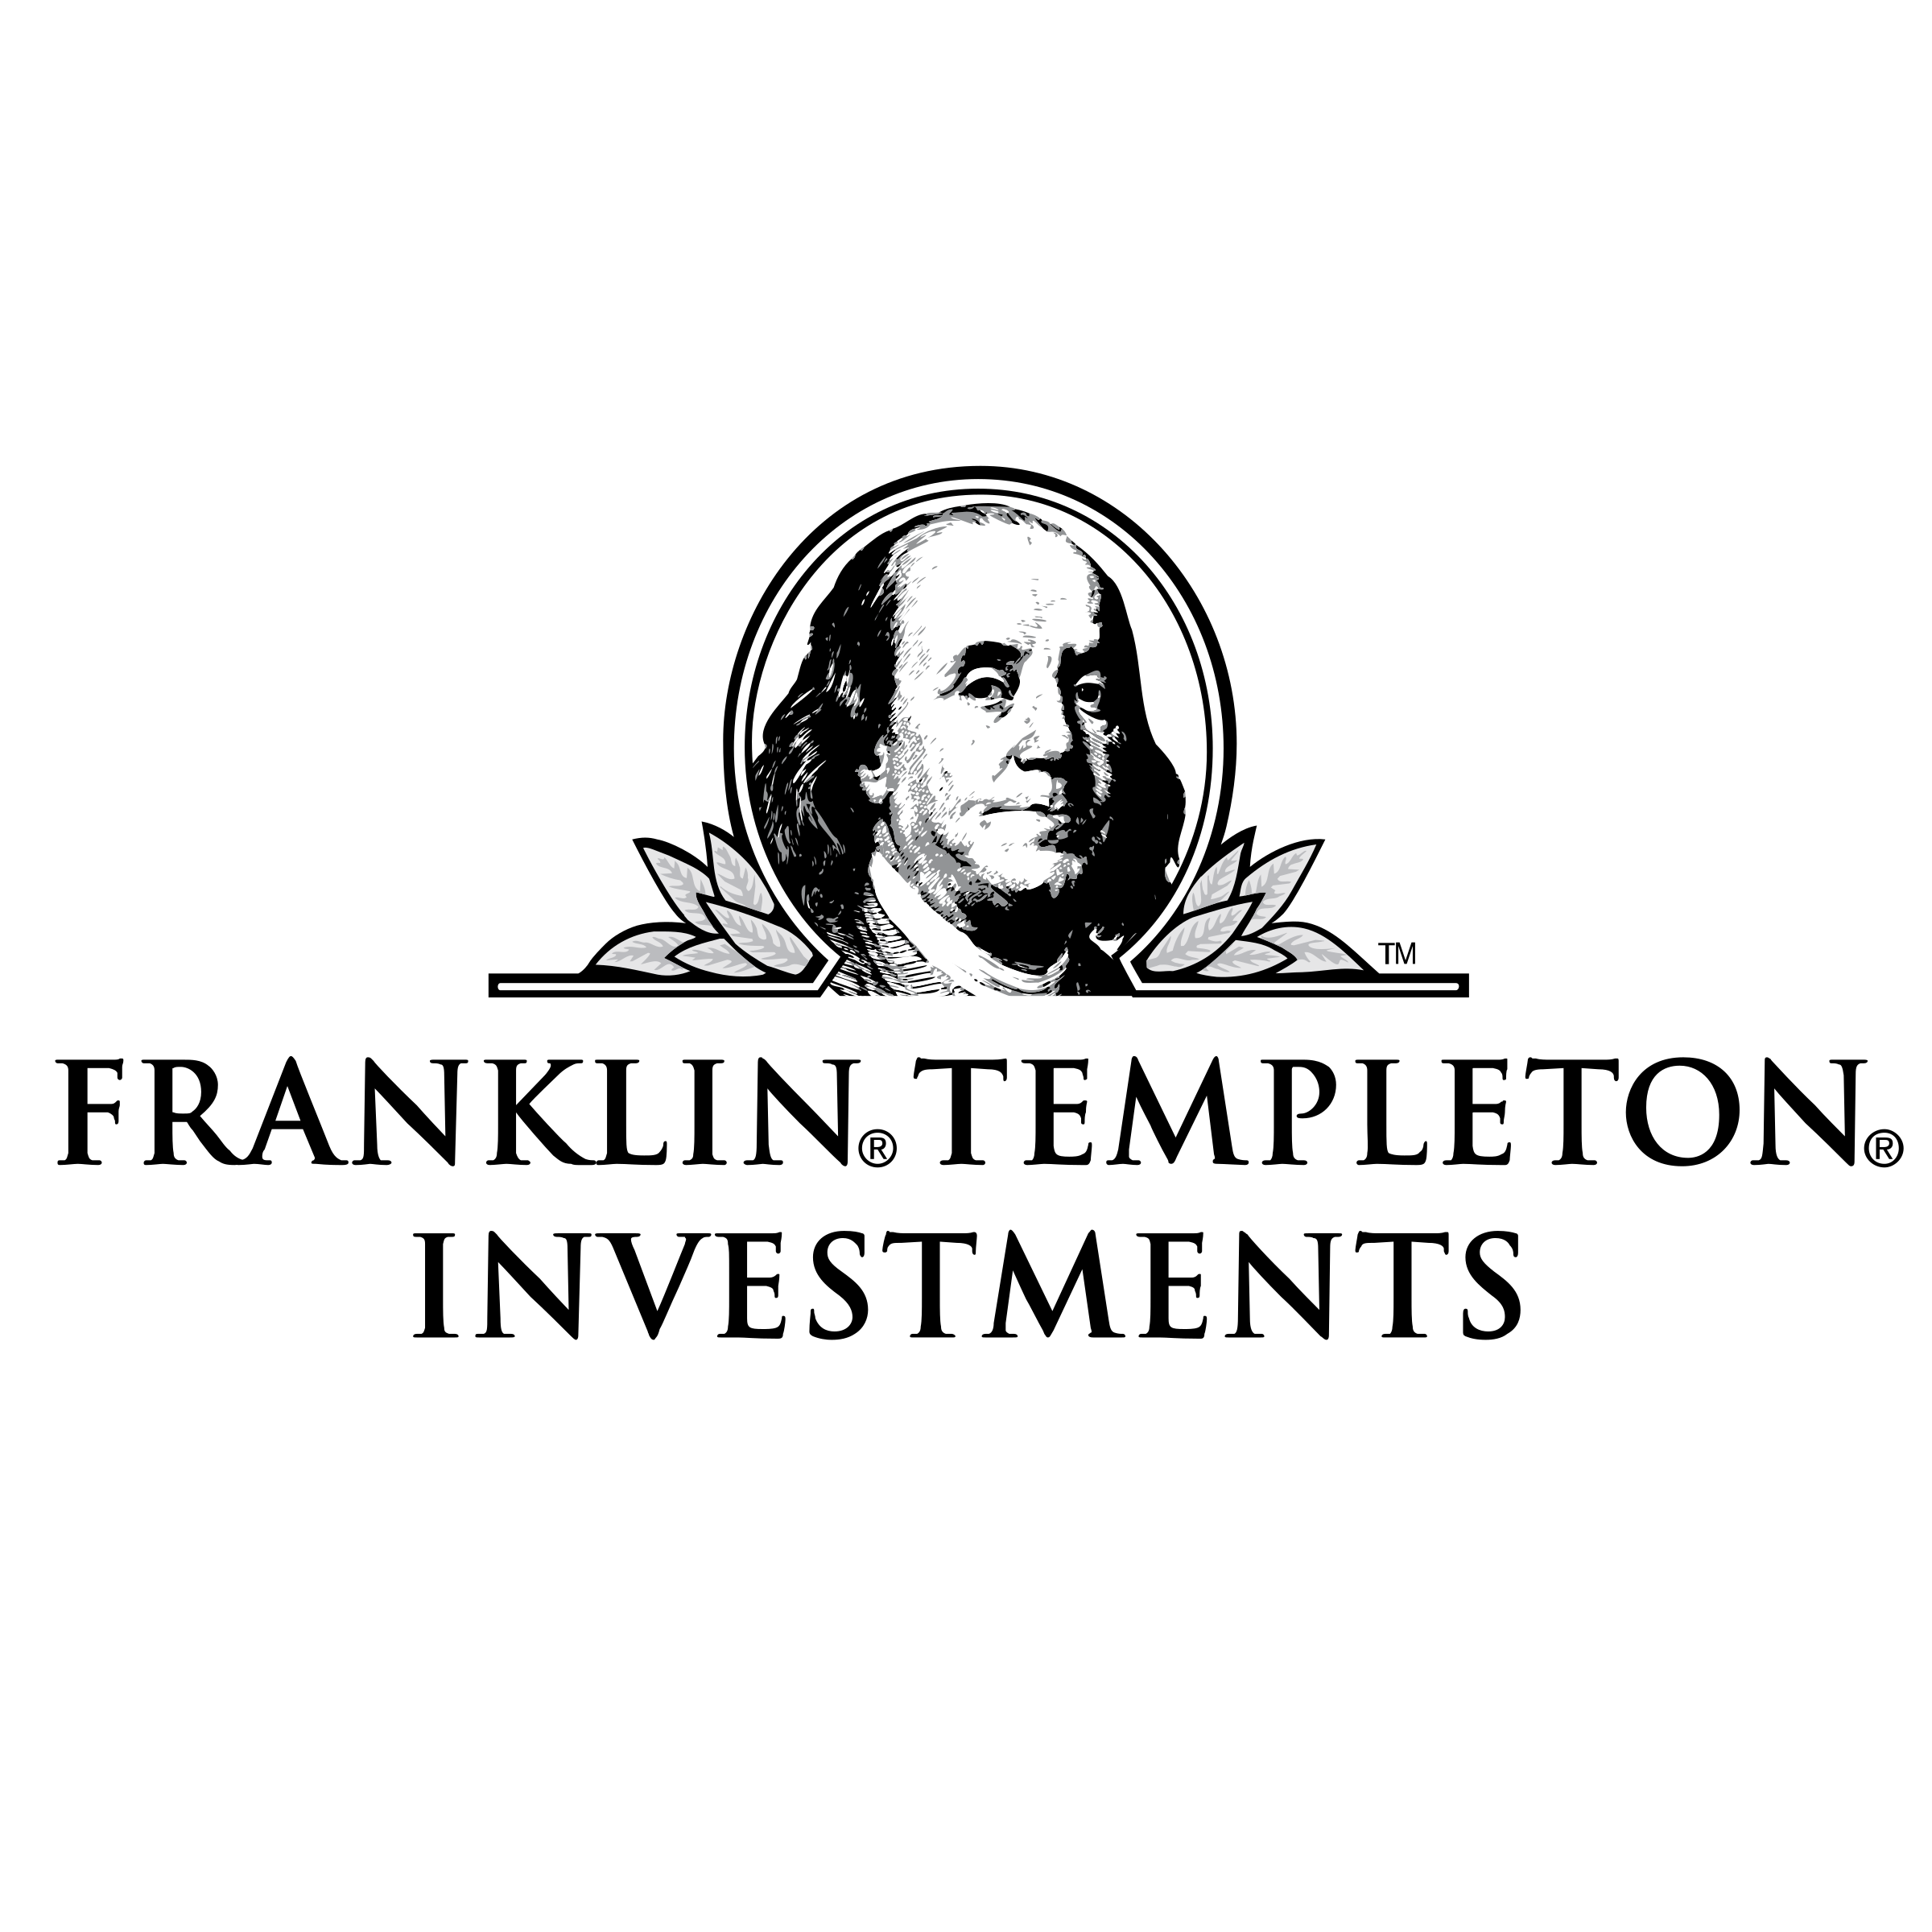 franklin-templeton-investments-logo-png-transparent.png